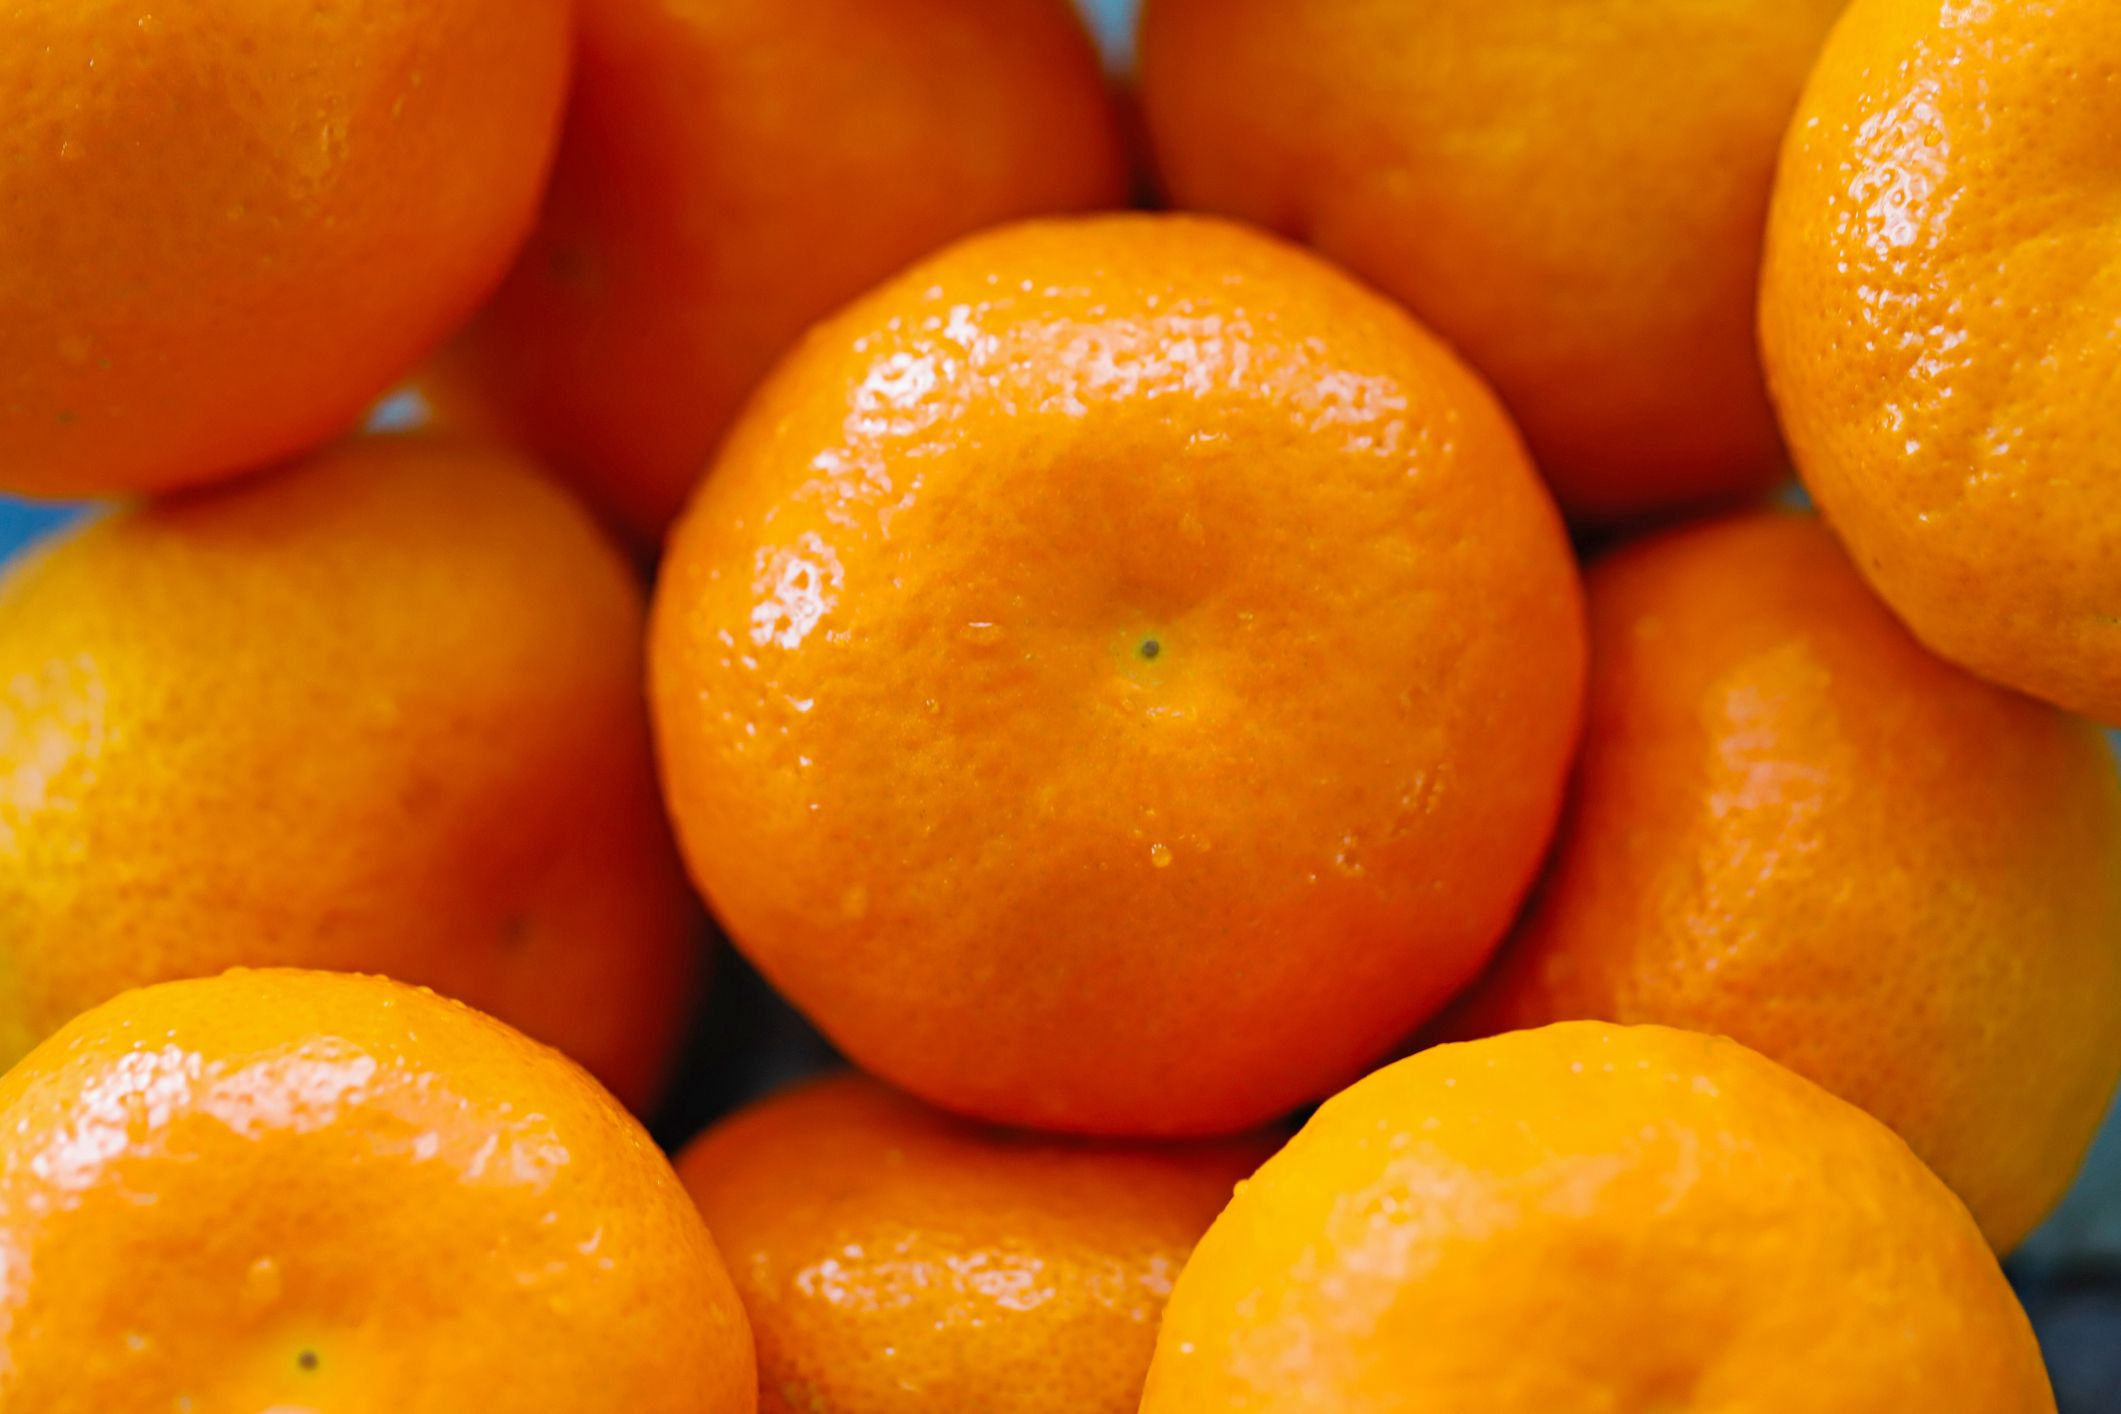 Tangerines Have Incredible Anti-Aging Benefits, Nutritionists Say